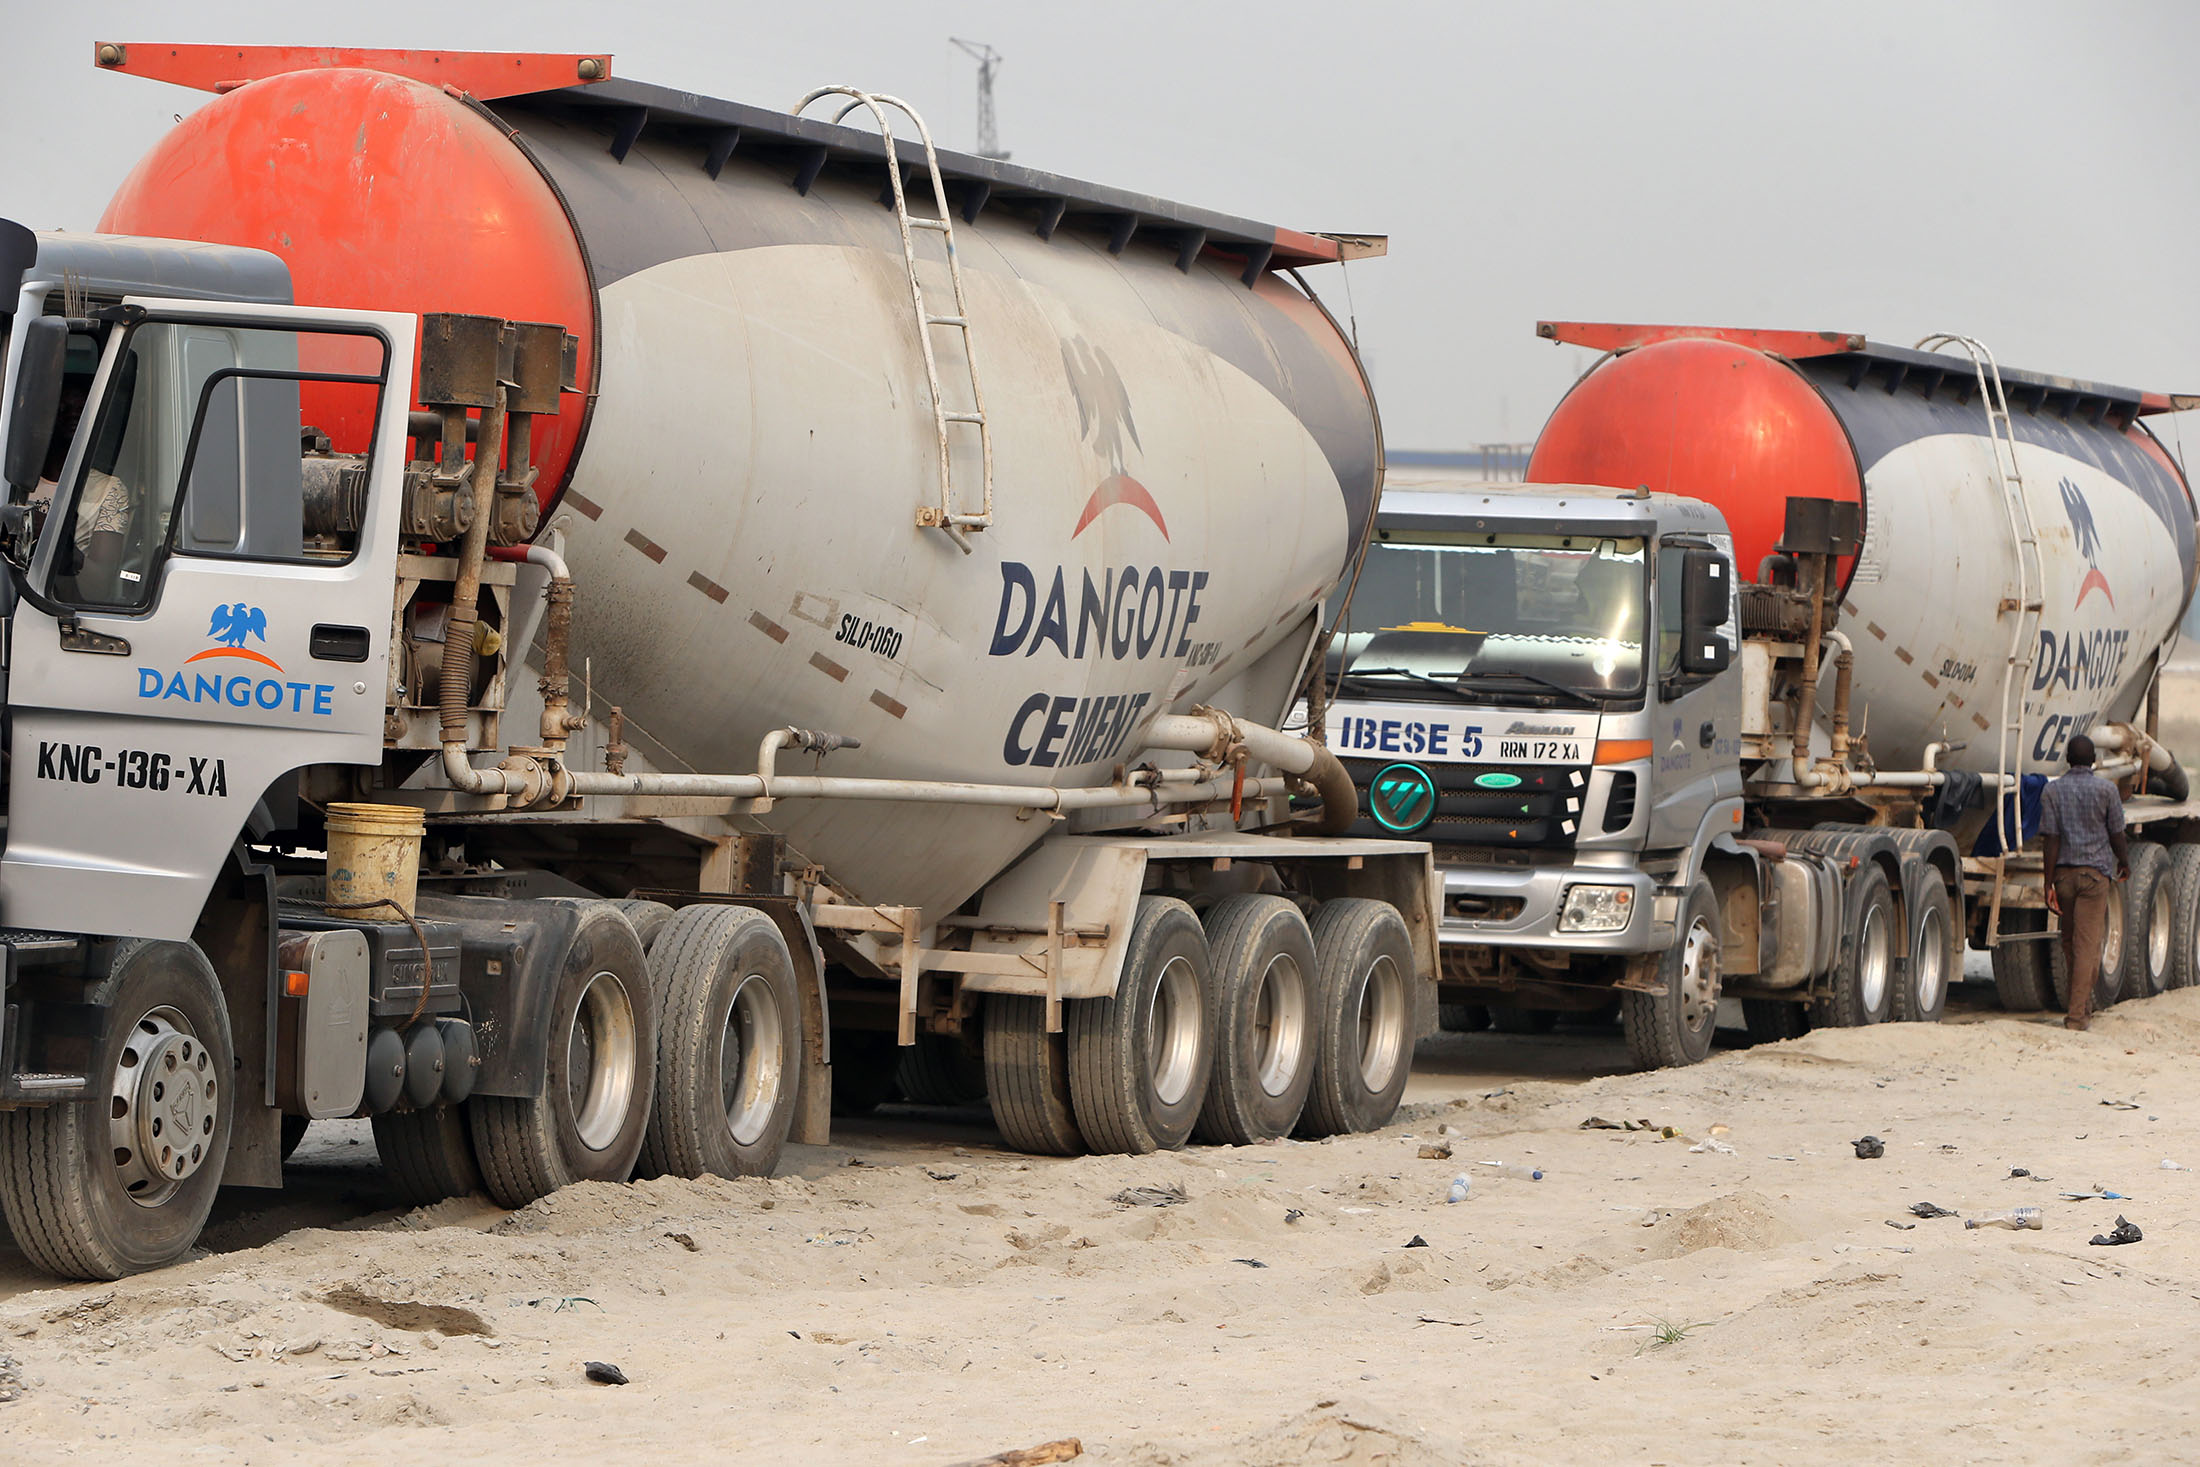 Dangote Cement - Investors King